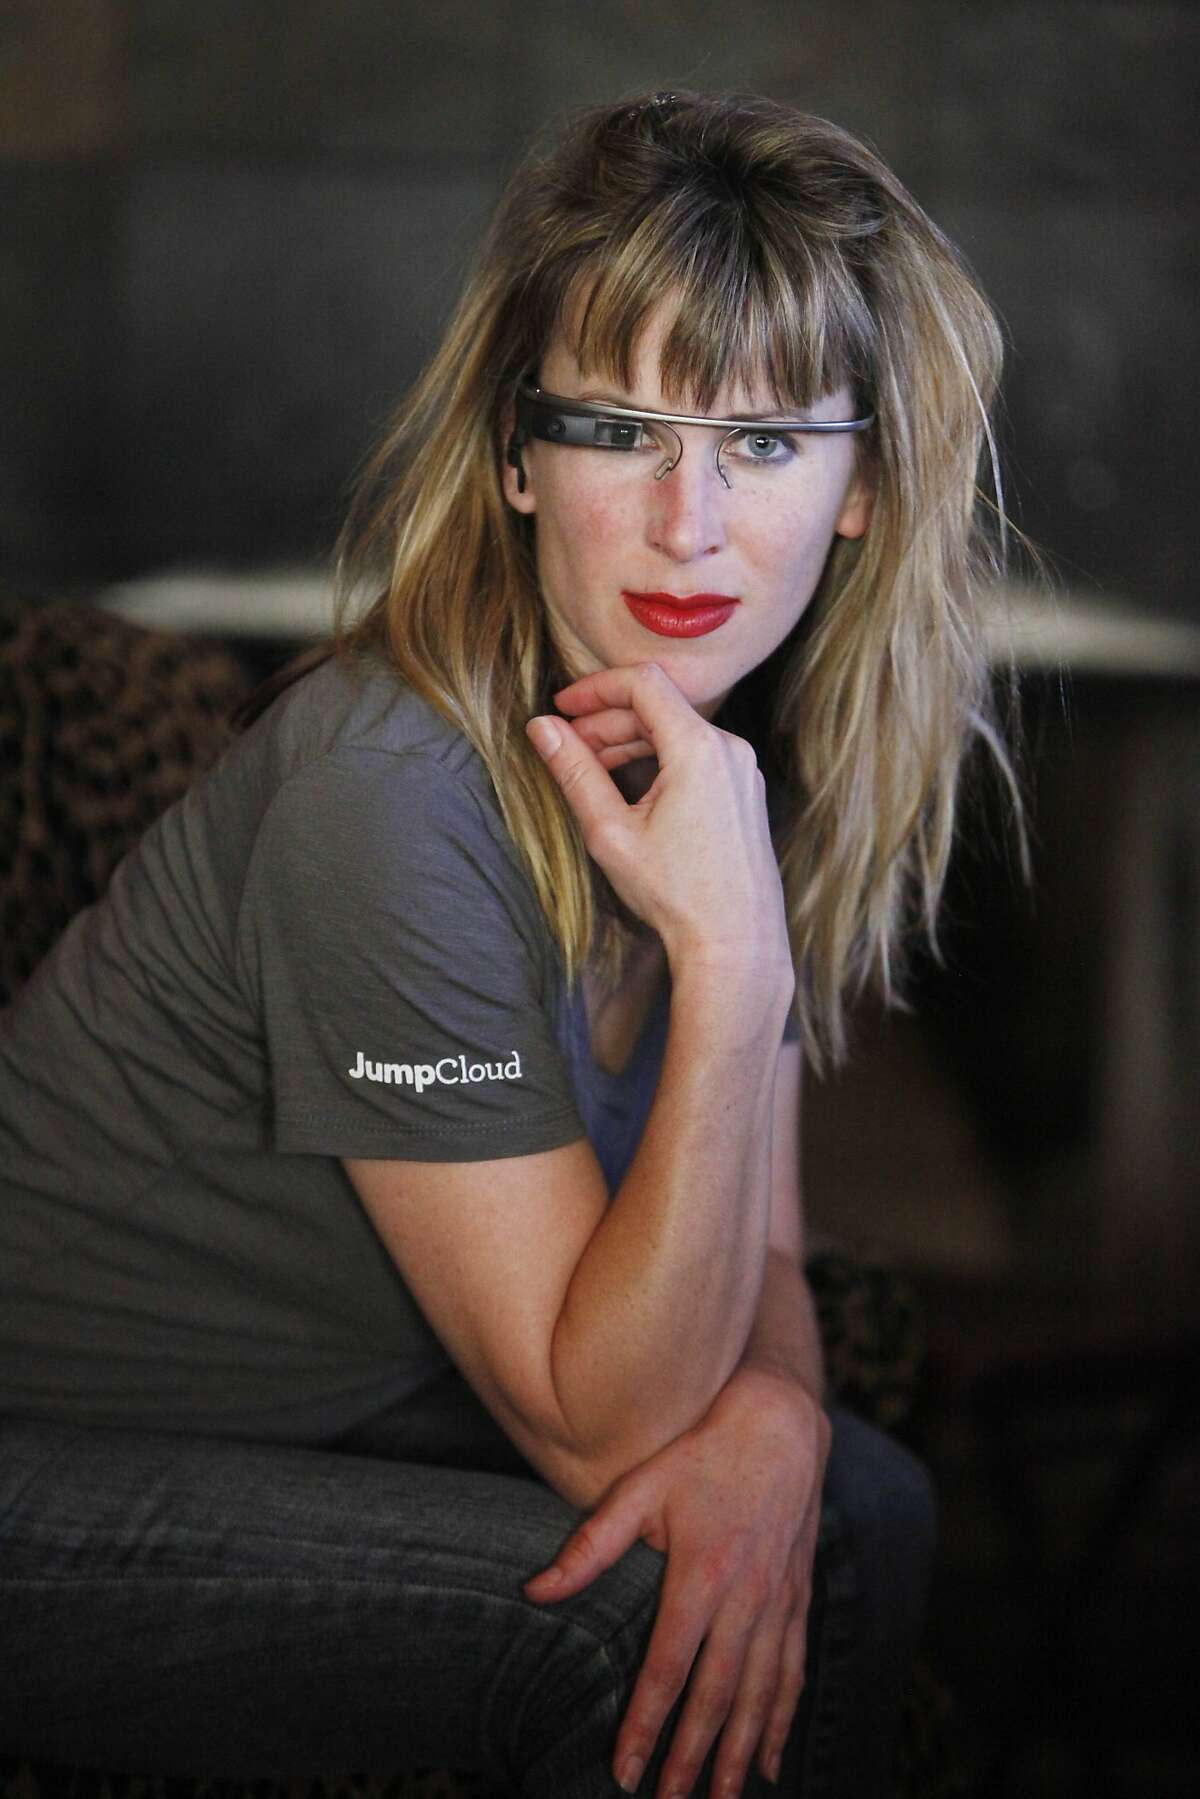 Sarah Slocum posted a video on YouTube of the Google Glass incident at a bar in S.F.